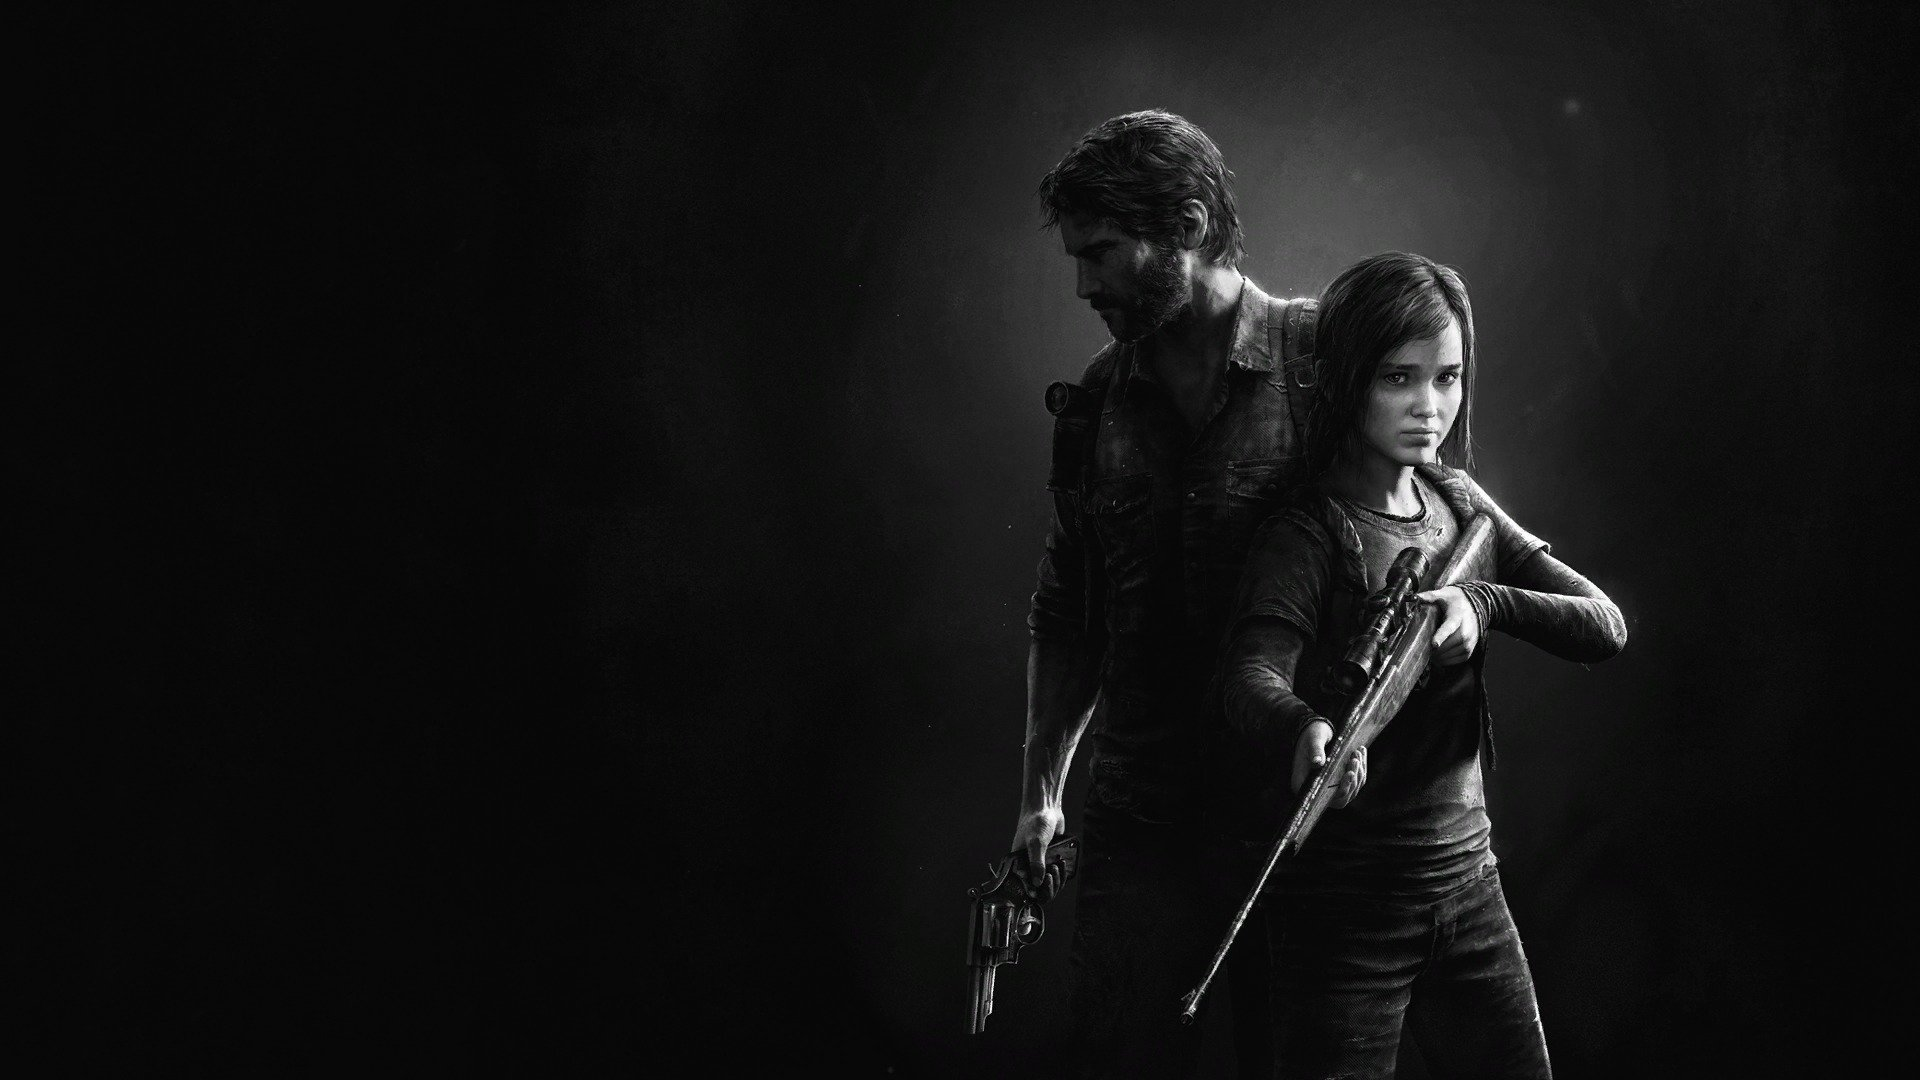 The Last Of Us Remastered Fondo De Pantalla Hd Fondo De